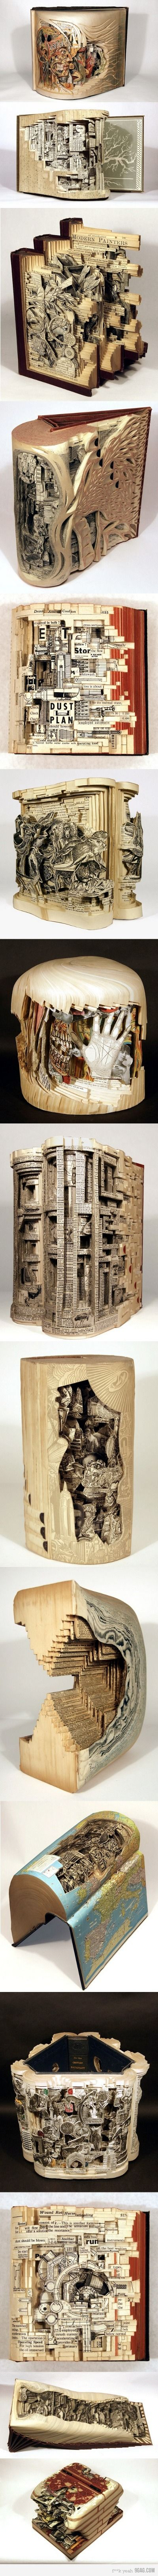 Awesome books are awesomeAltered Art Book, Awesome Book, Book Art, Carvings Book, Bookart, Book Sculpture, Book Carvings, Paper Art, Altered Book